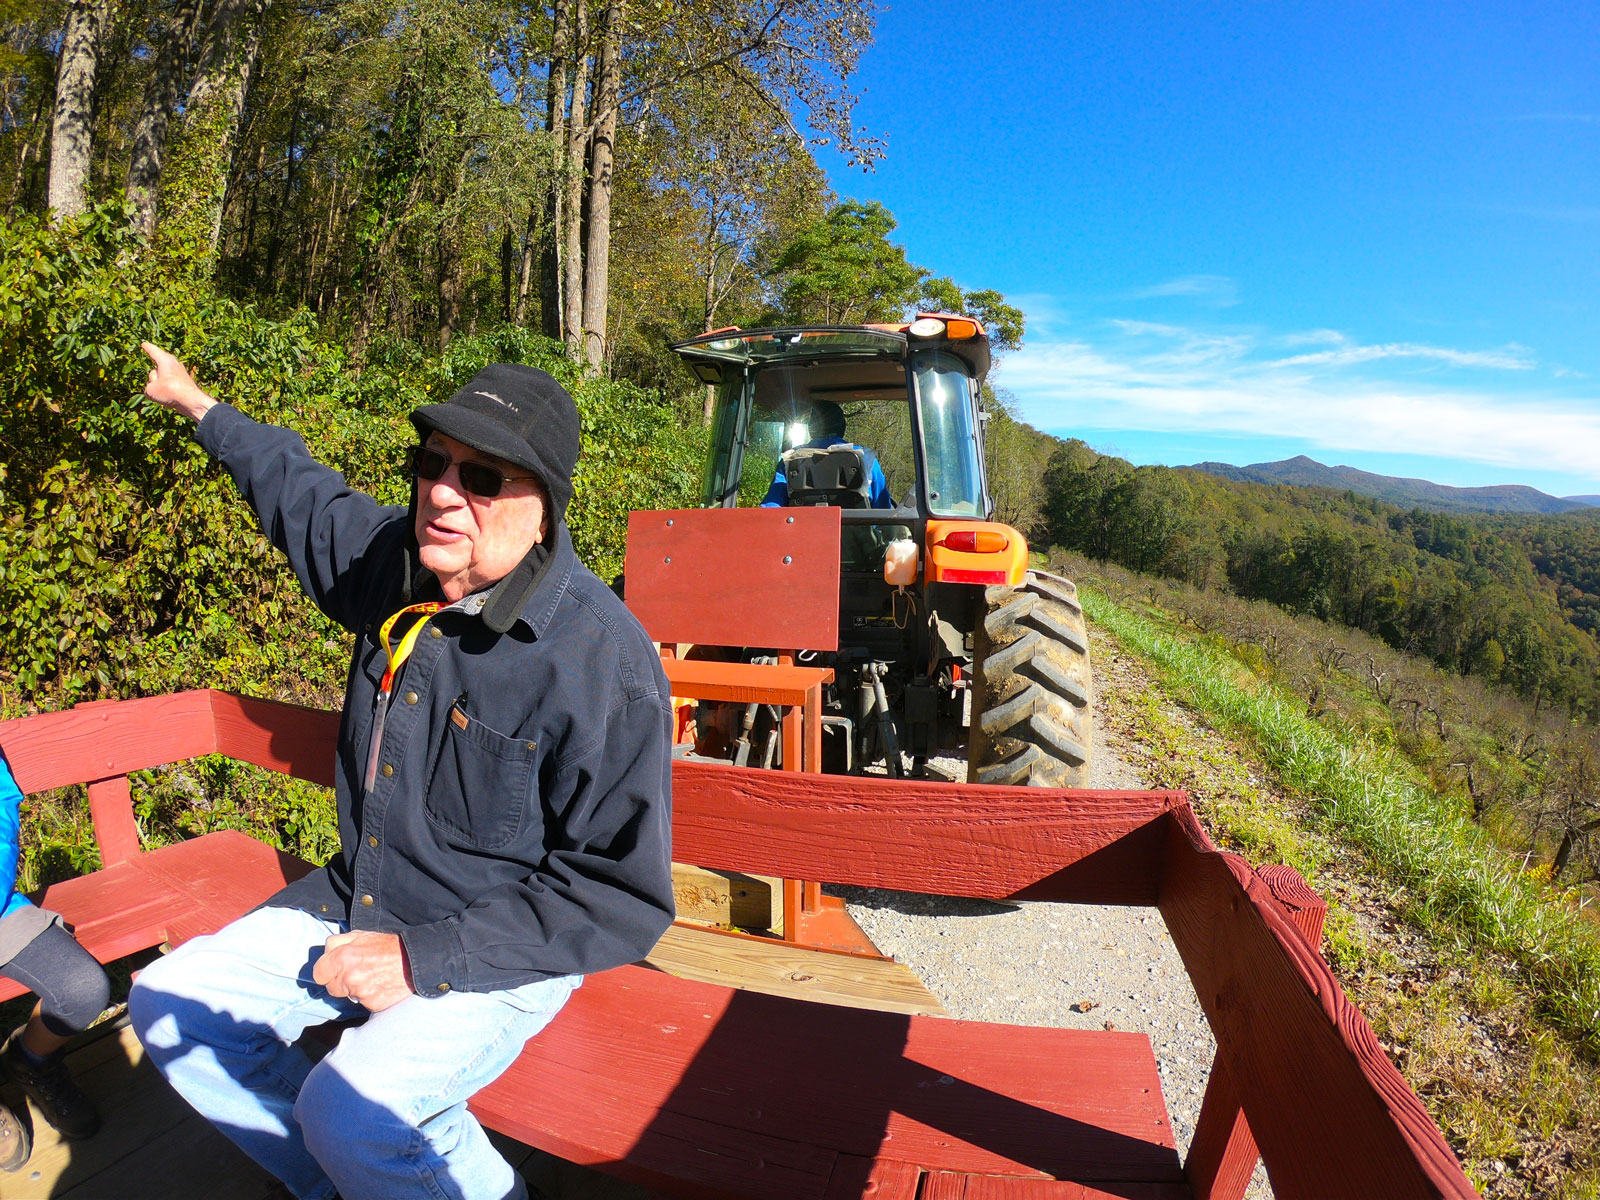 Bill Carson telling stories on the hayride at the Orchard at Alta Pass